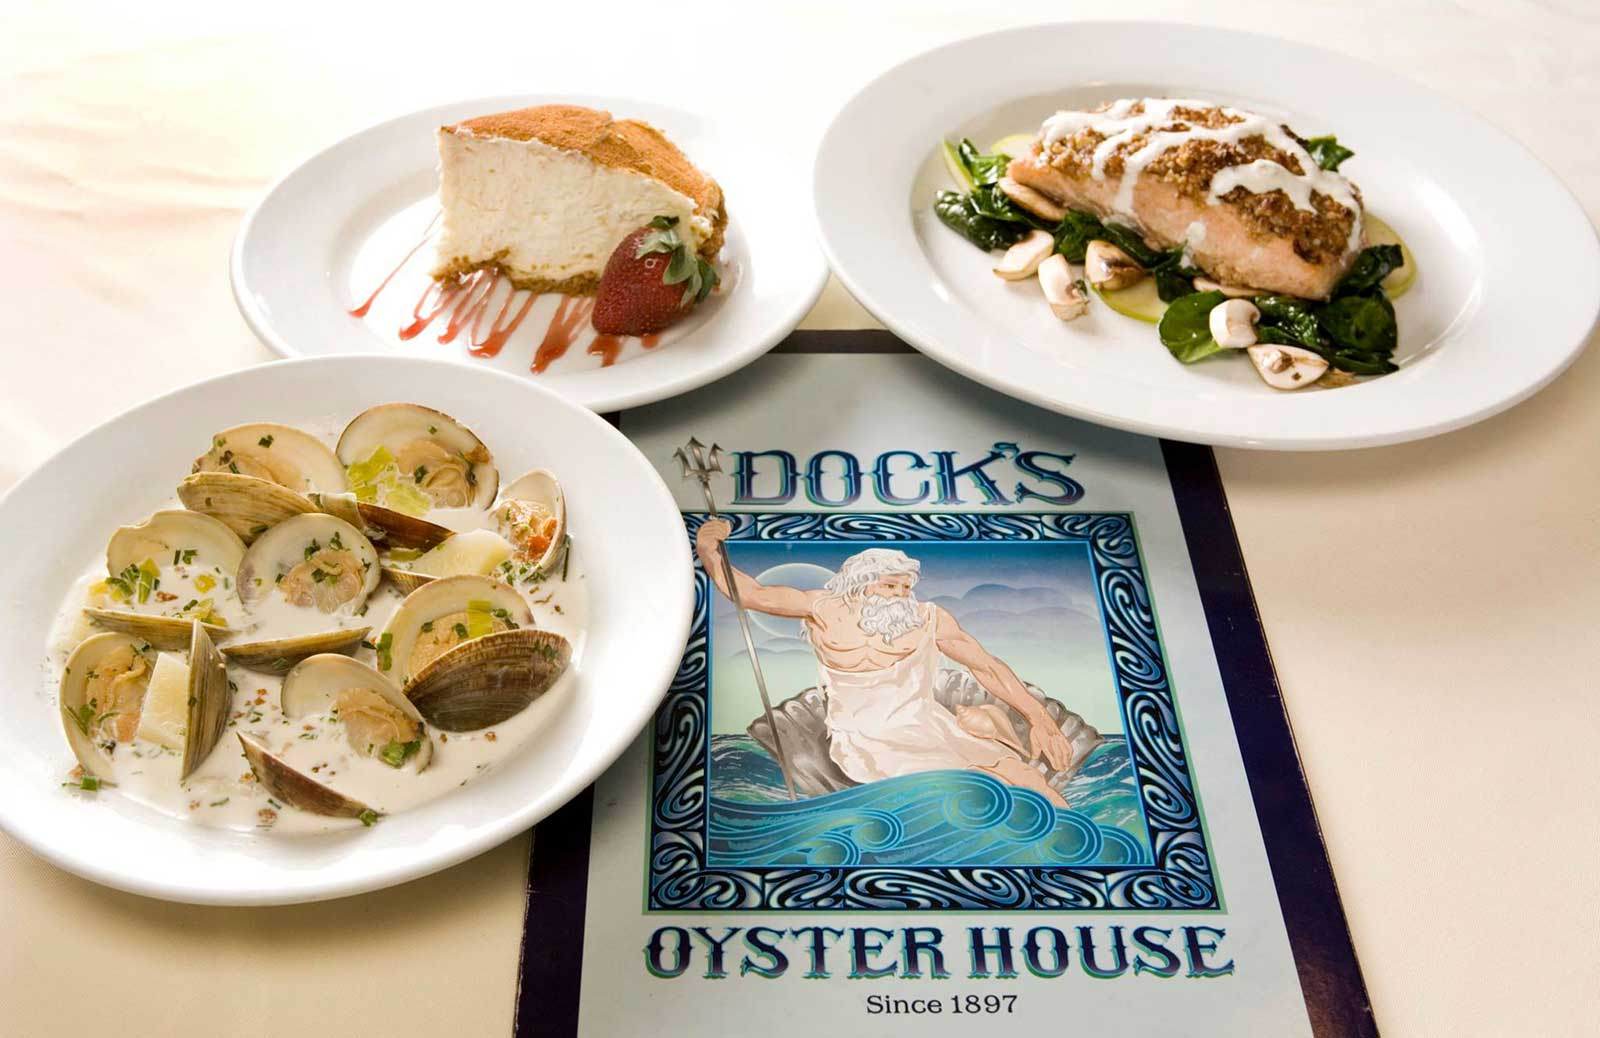 Docks Oyster House image 6